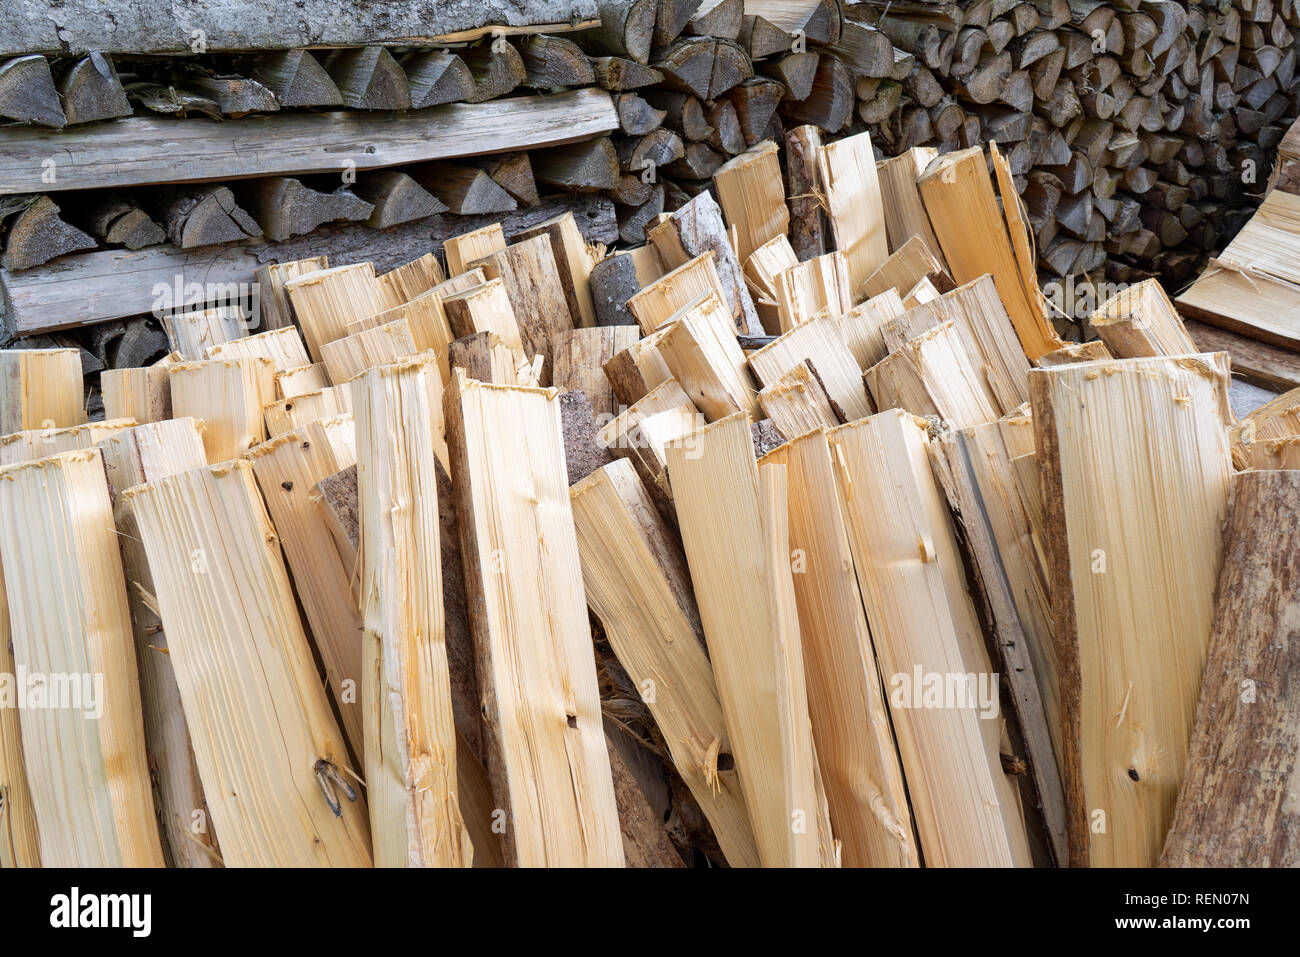 Upright, freshly processed firewood - Stock Image